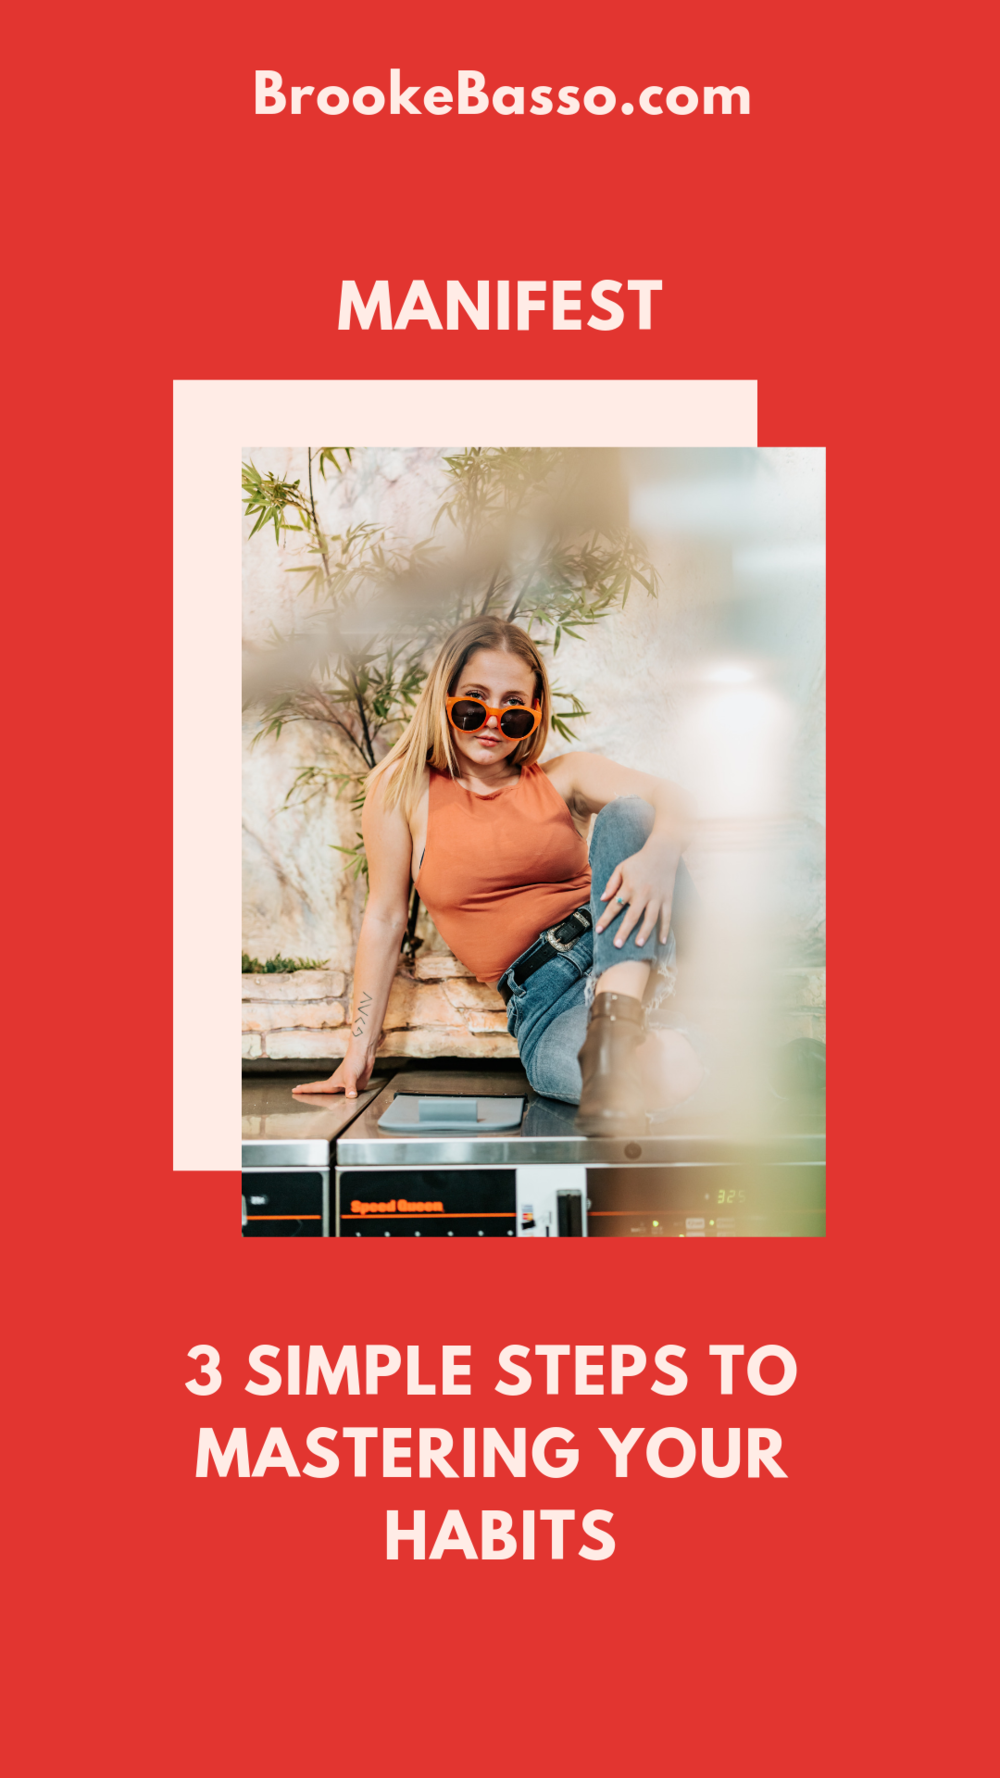 3 SIMPLE STEPS TO MASTERING YOUR HABITS.png